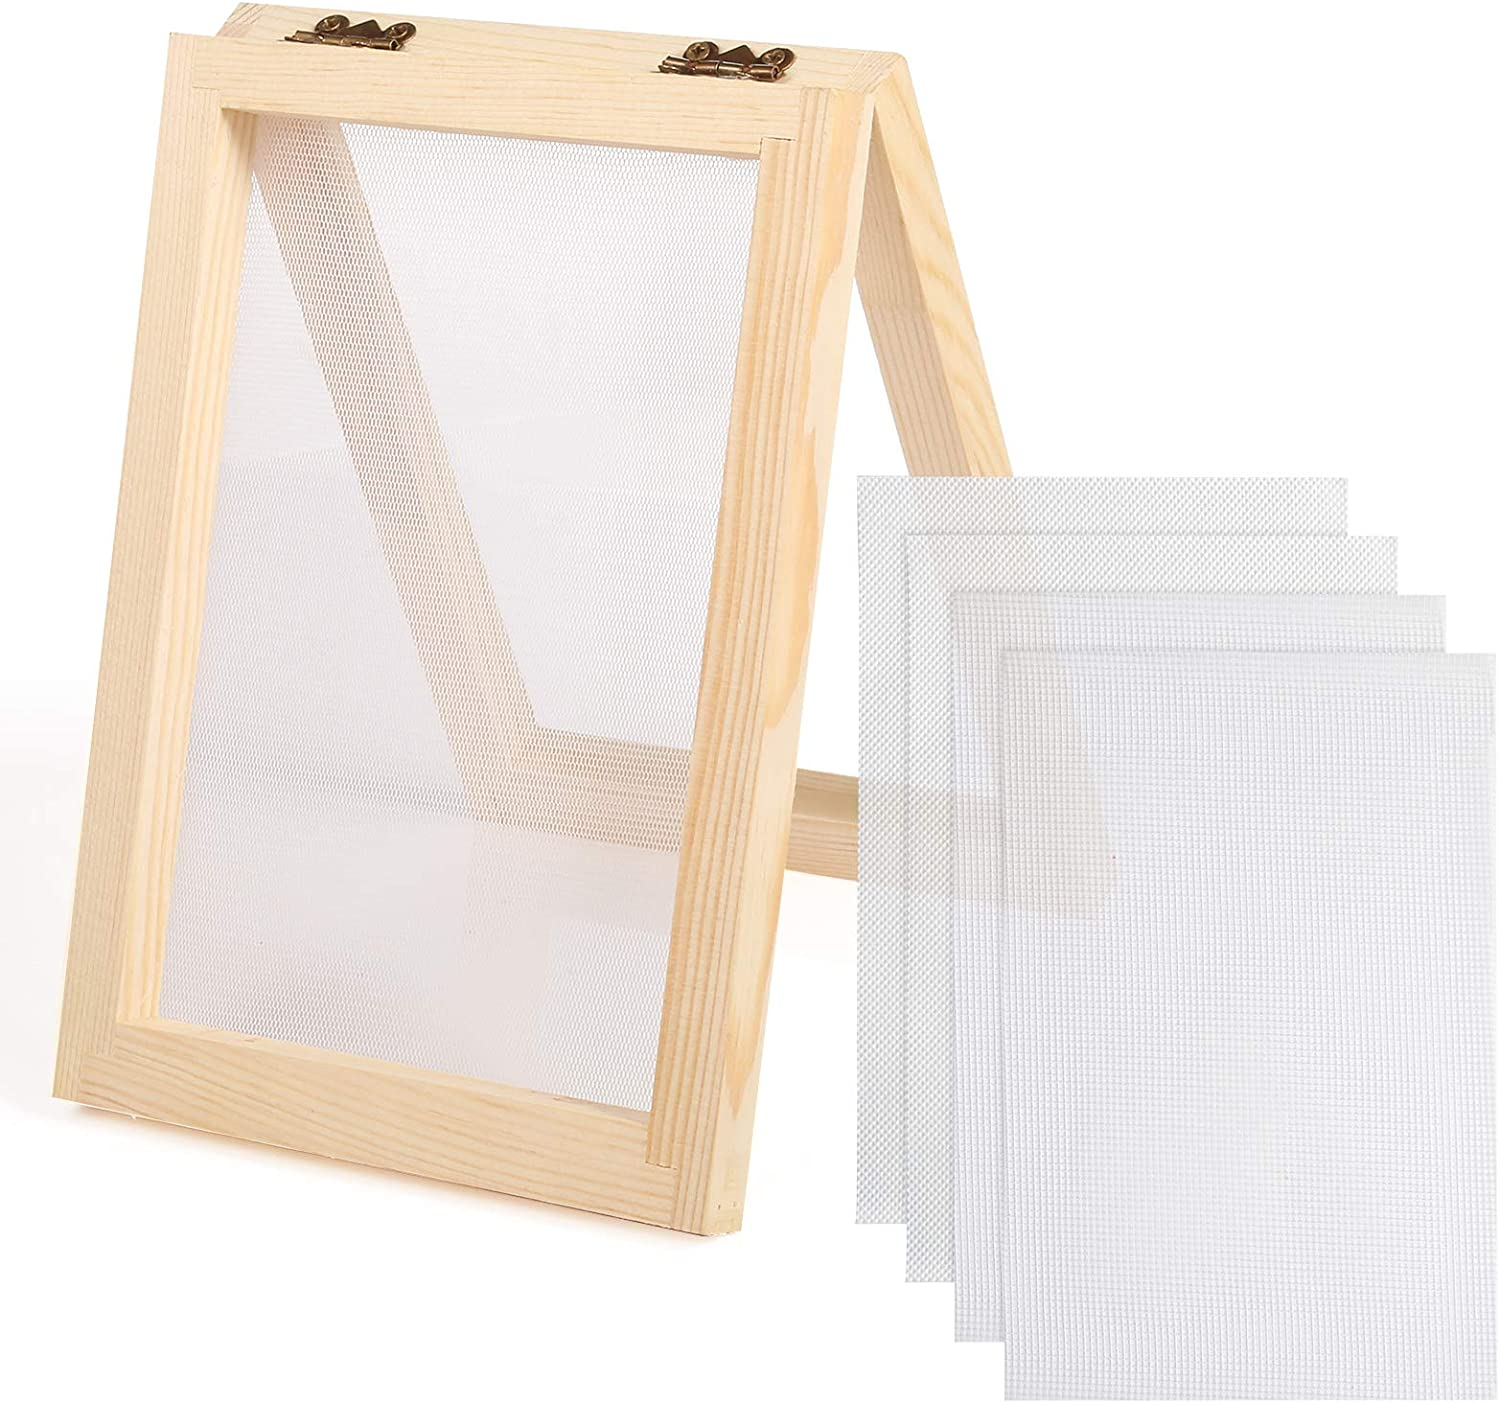 Aoibrloy 5 x 7 Inch Wooden Paper Making Mould Frame Papermaking Screen Kit for DIY Paper Craft